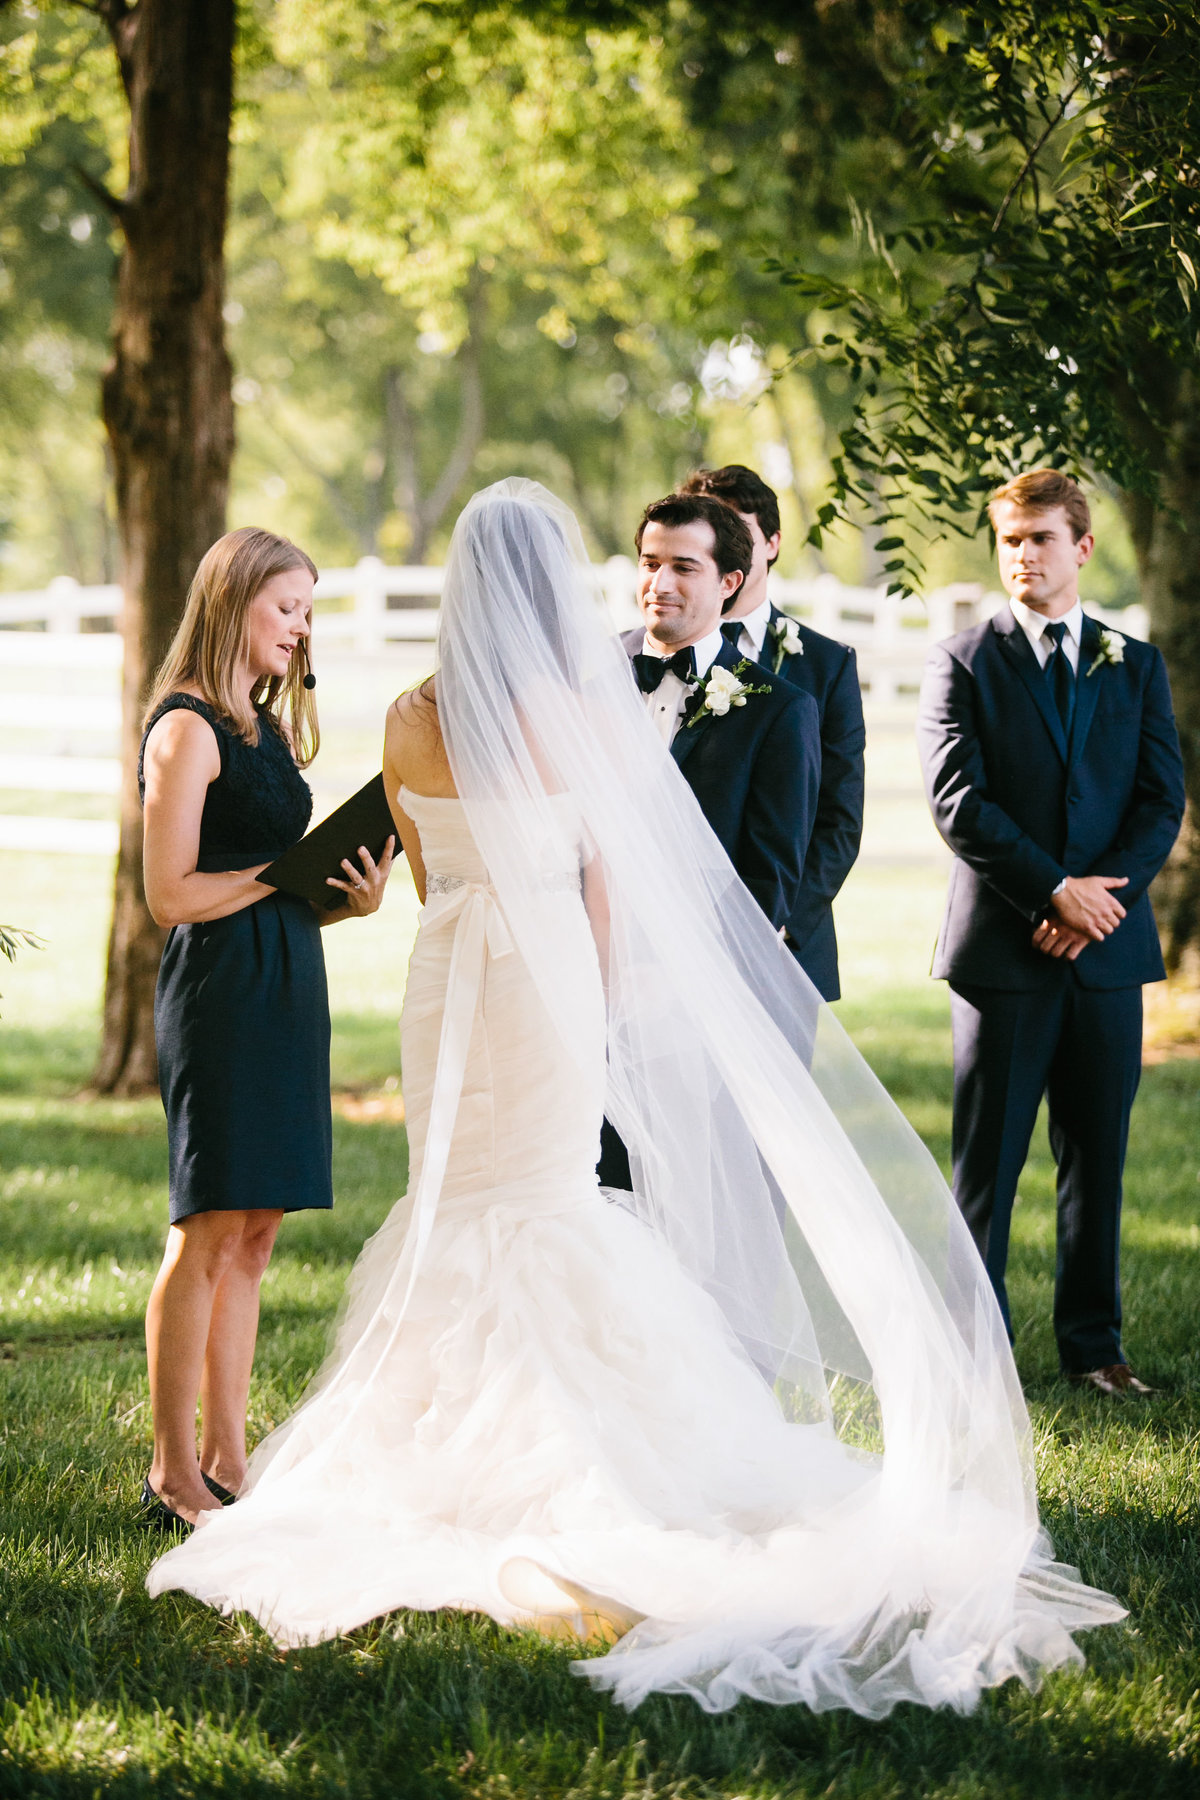 Fionnie_Jacob_Marblegate_Farm_Wedding_Knoxville_Abigail_Malone_Photography-631